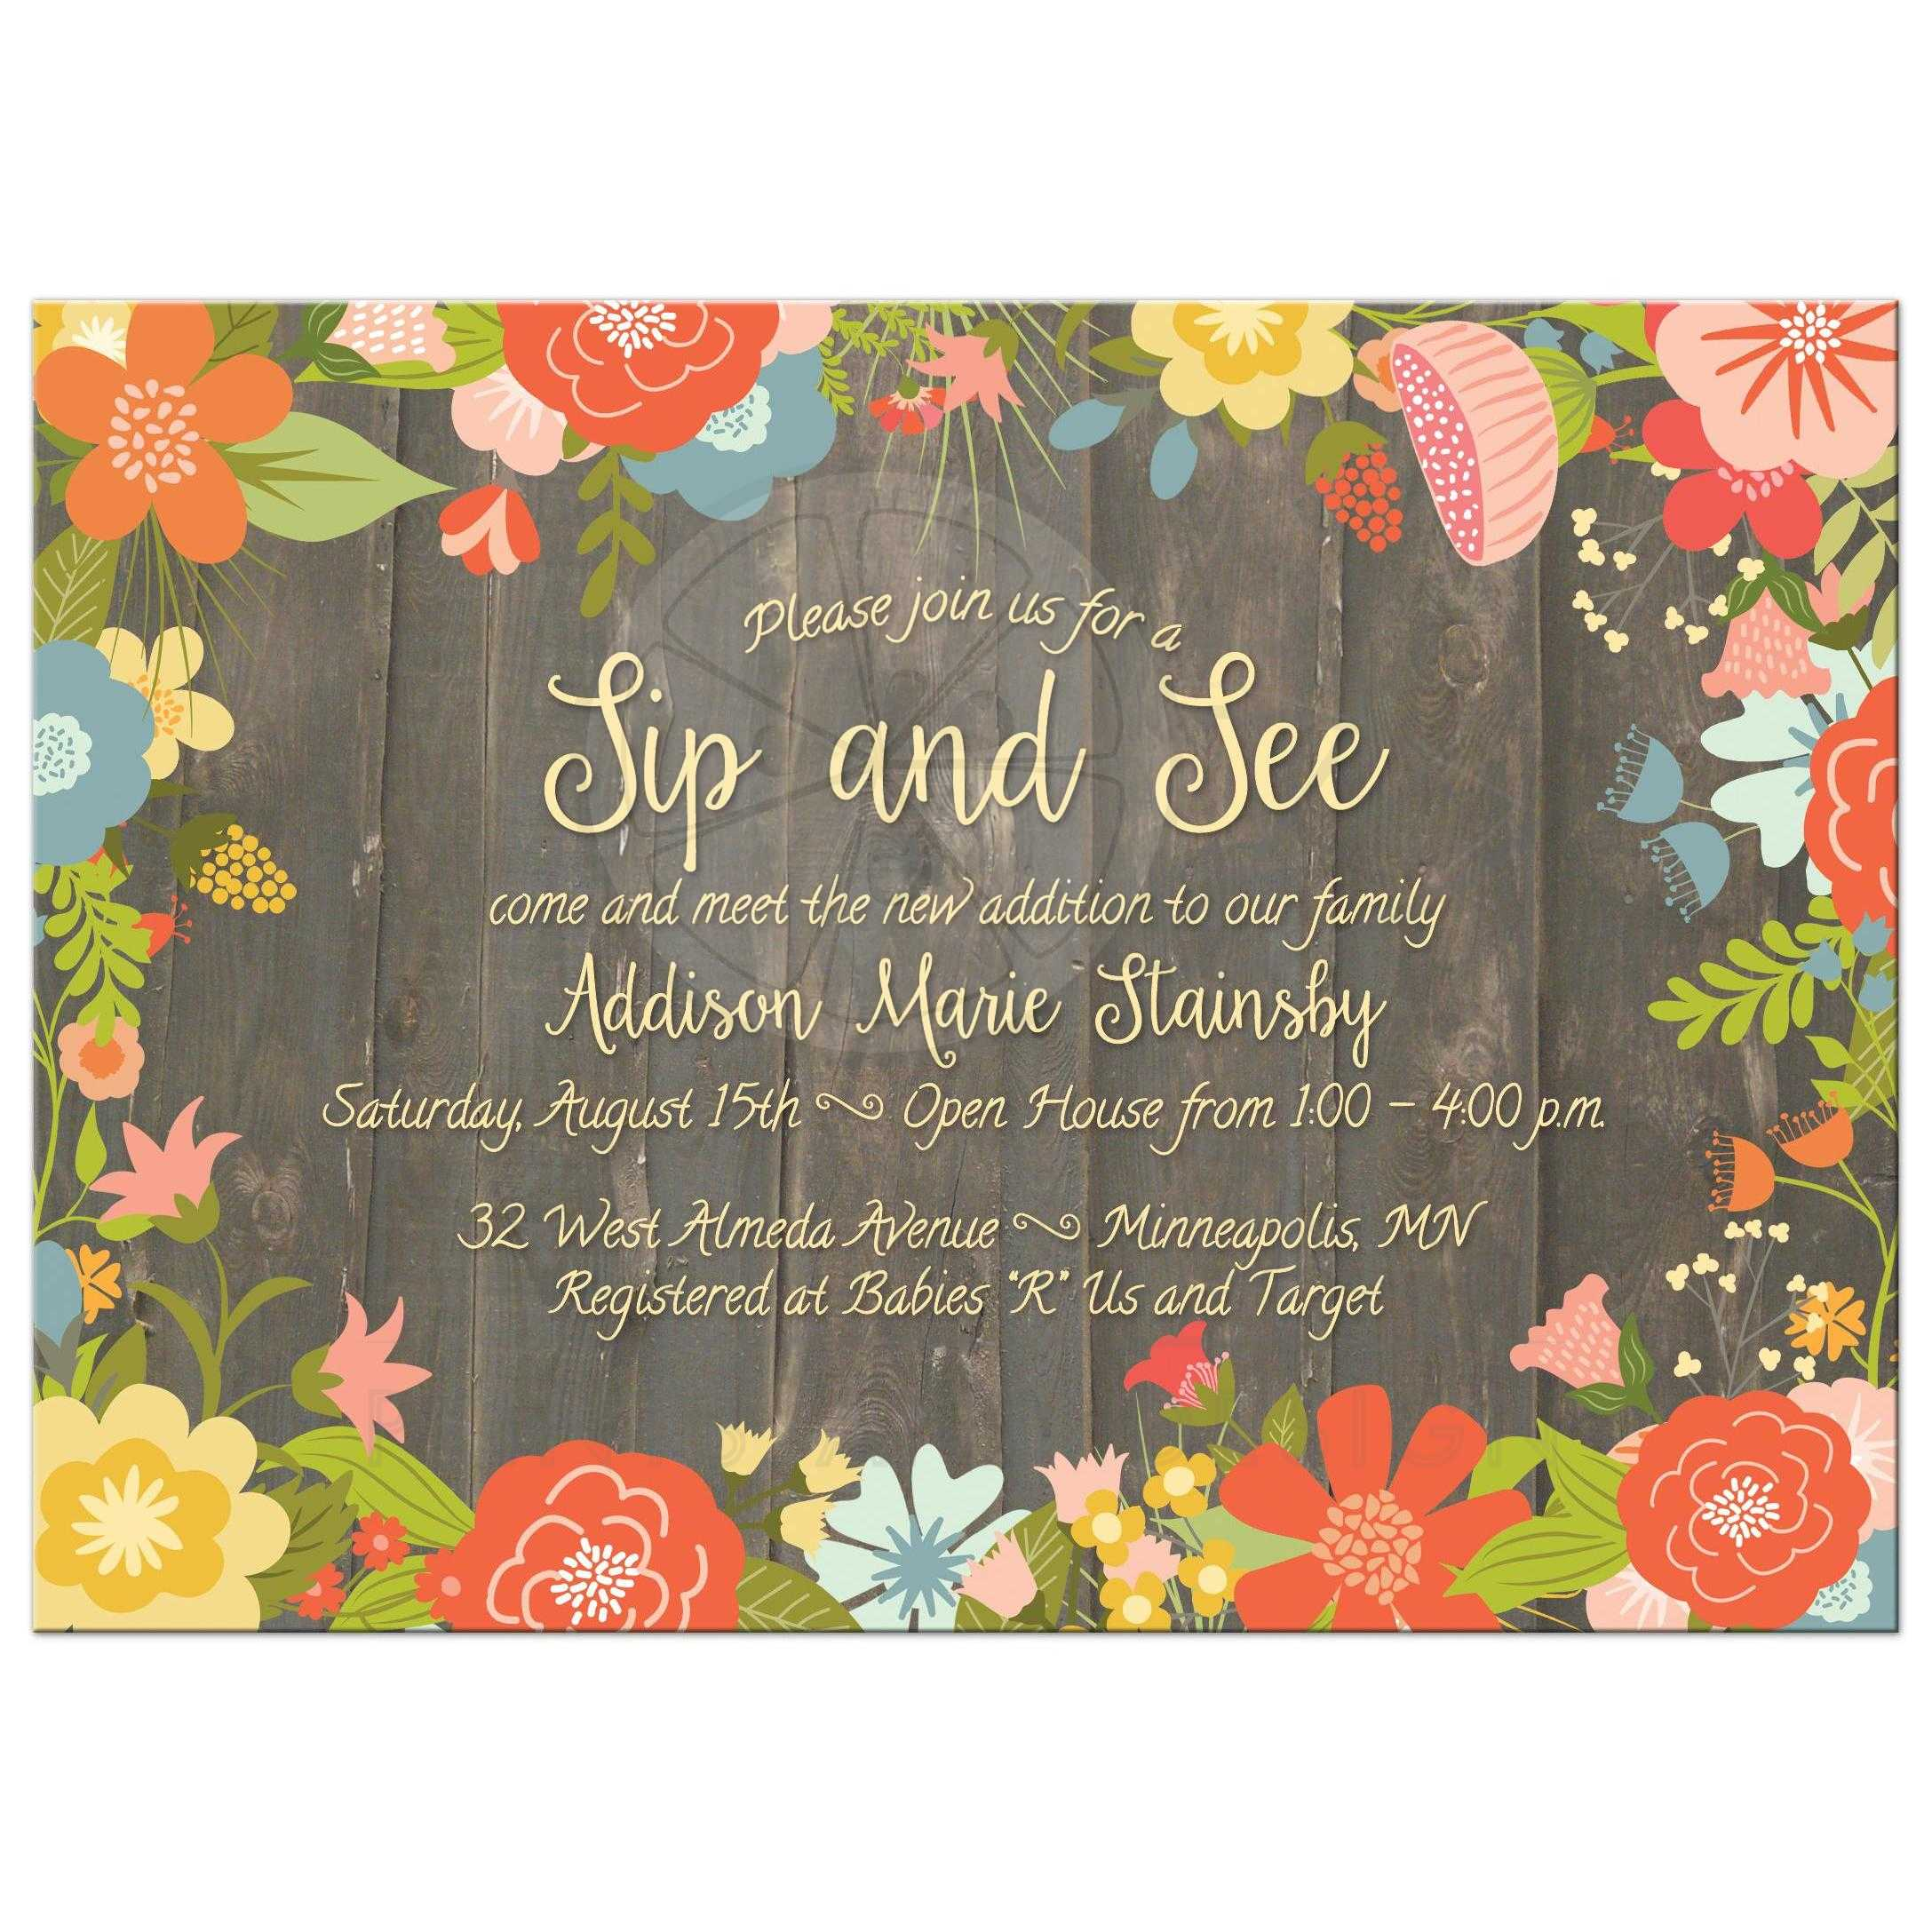 sip and see invitation rustic colorful flowers and wood grain